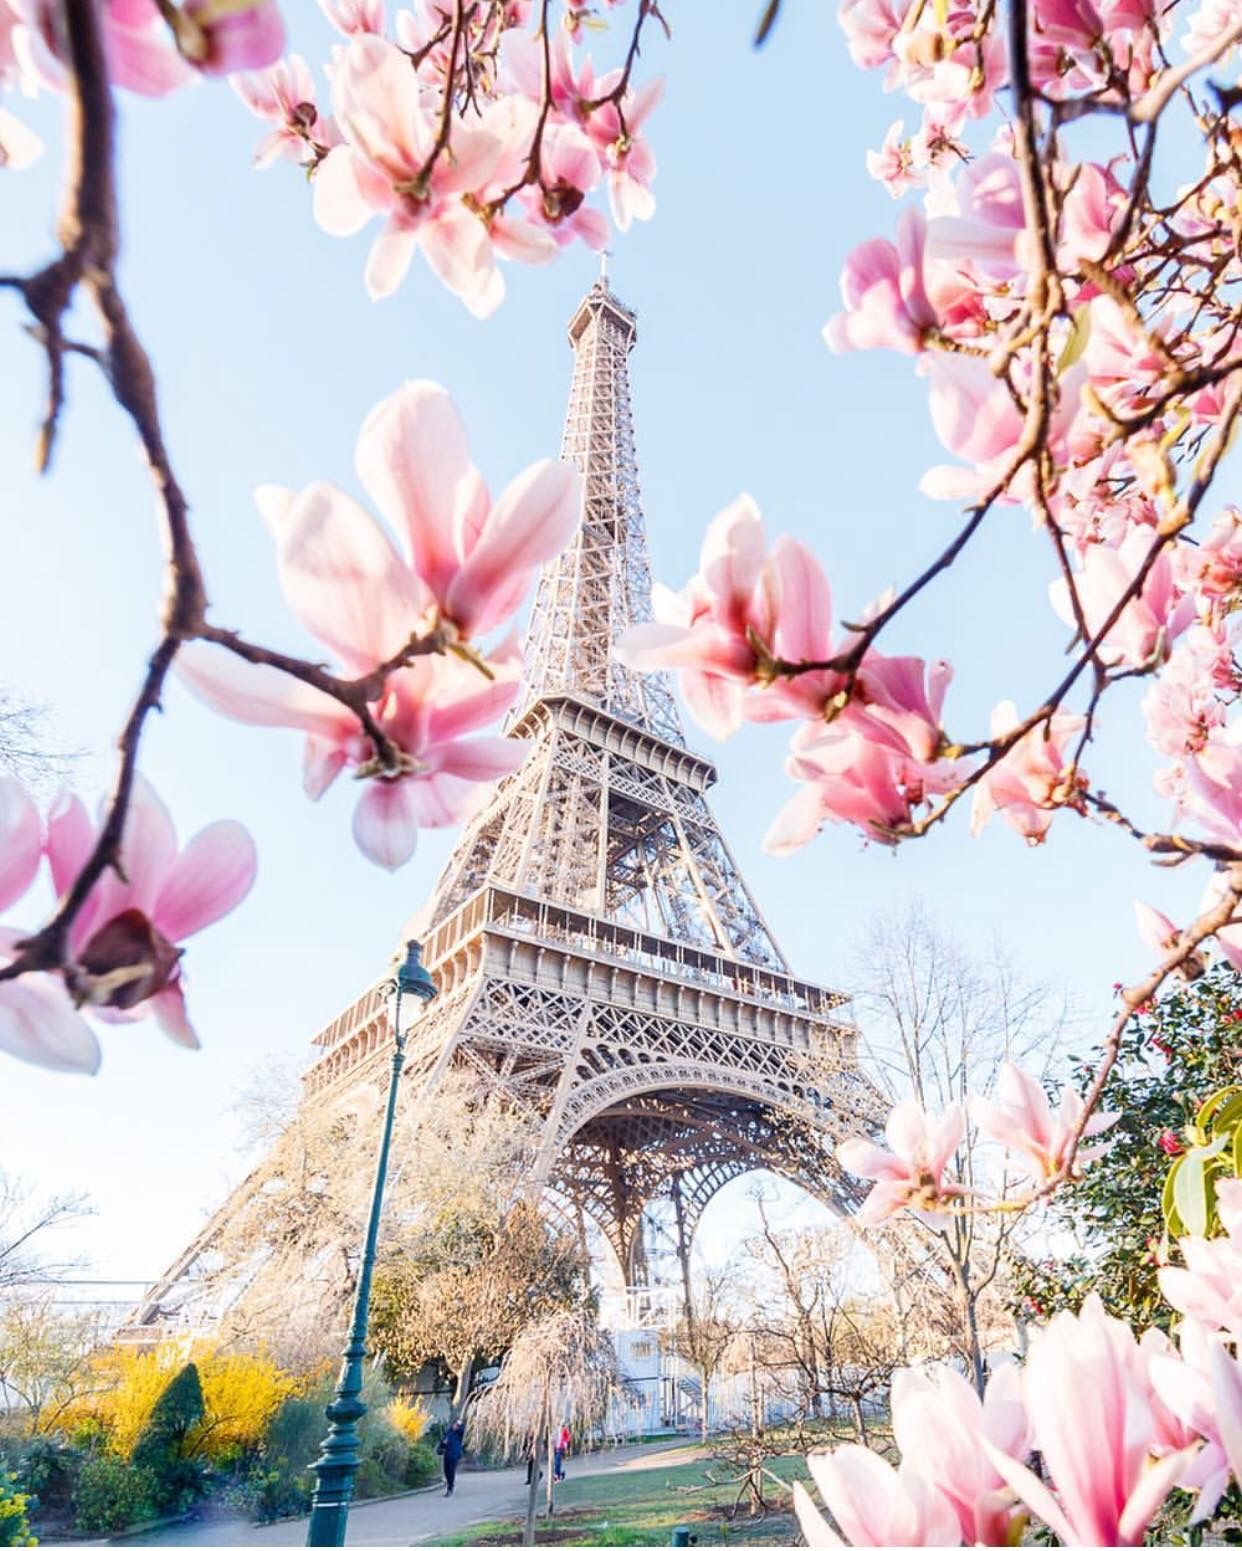 Eiffel Tower in Paris photo inspiration